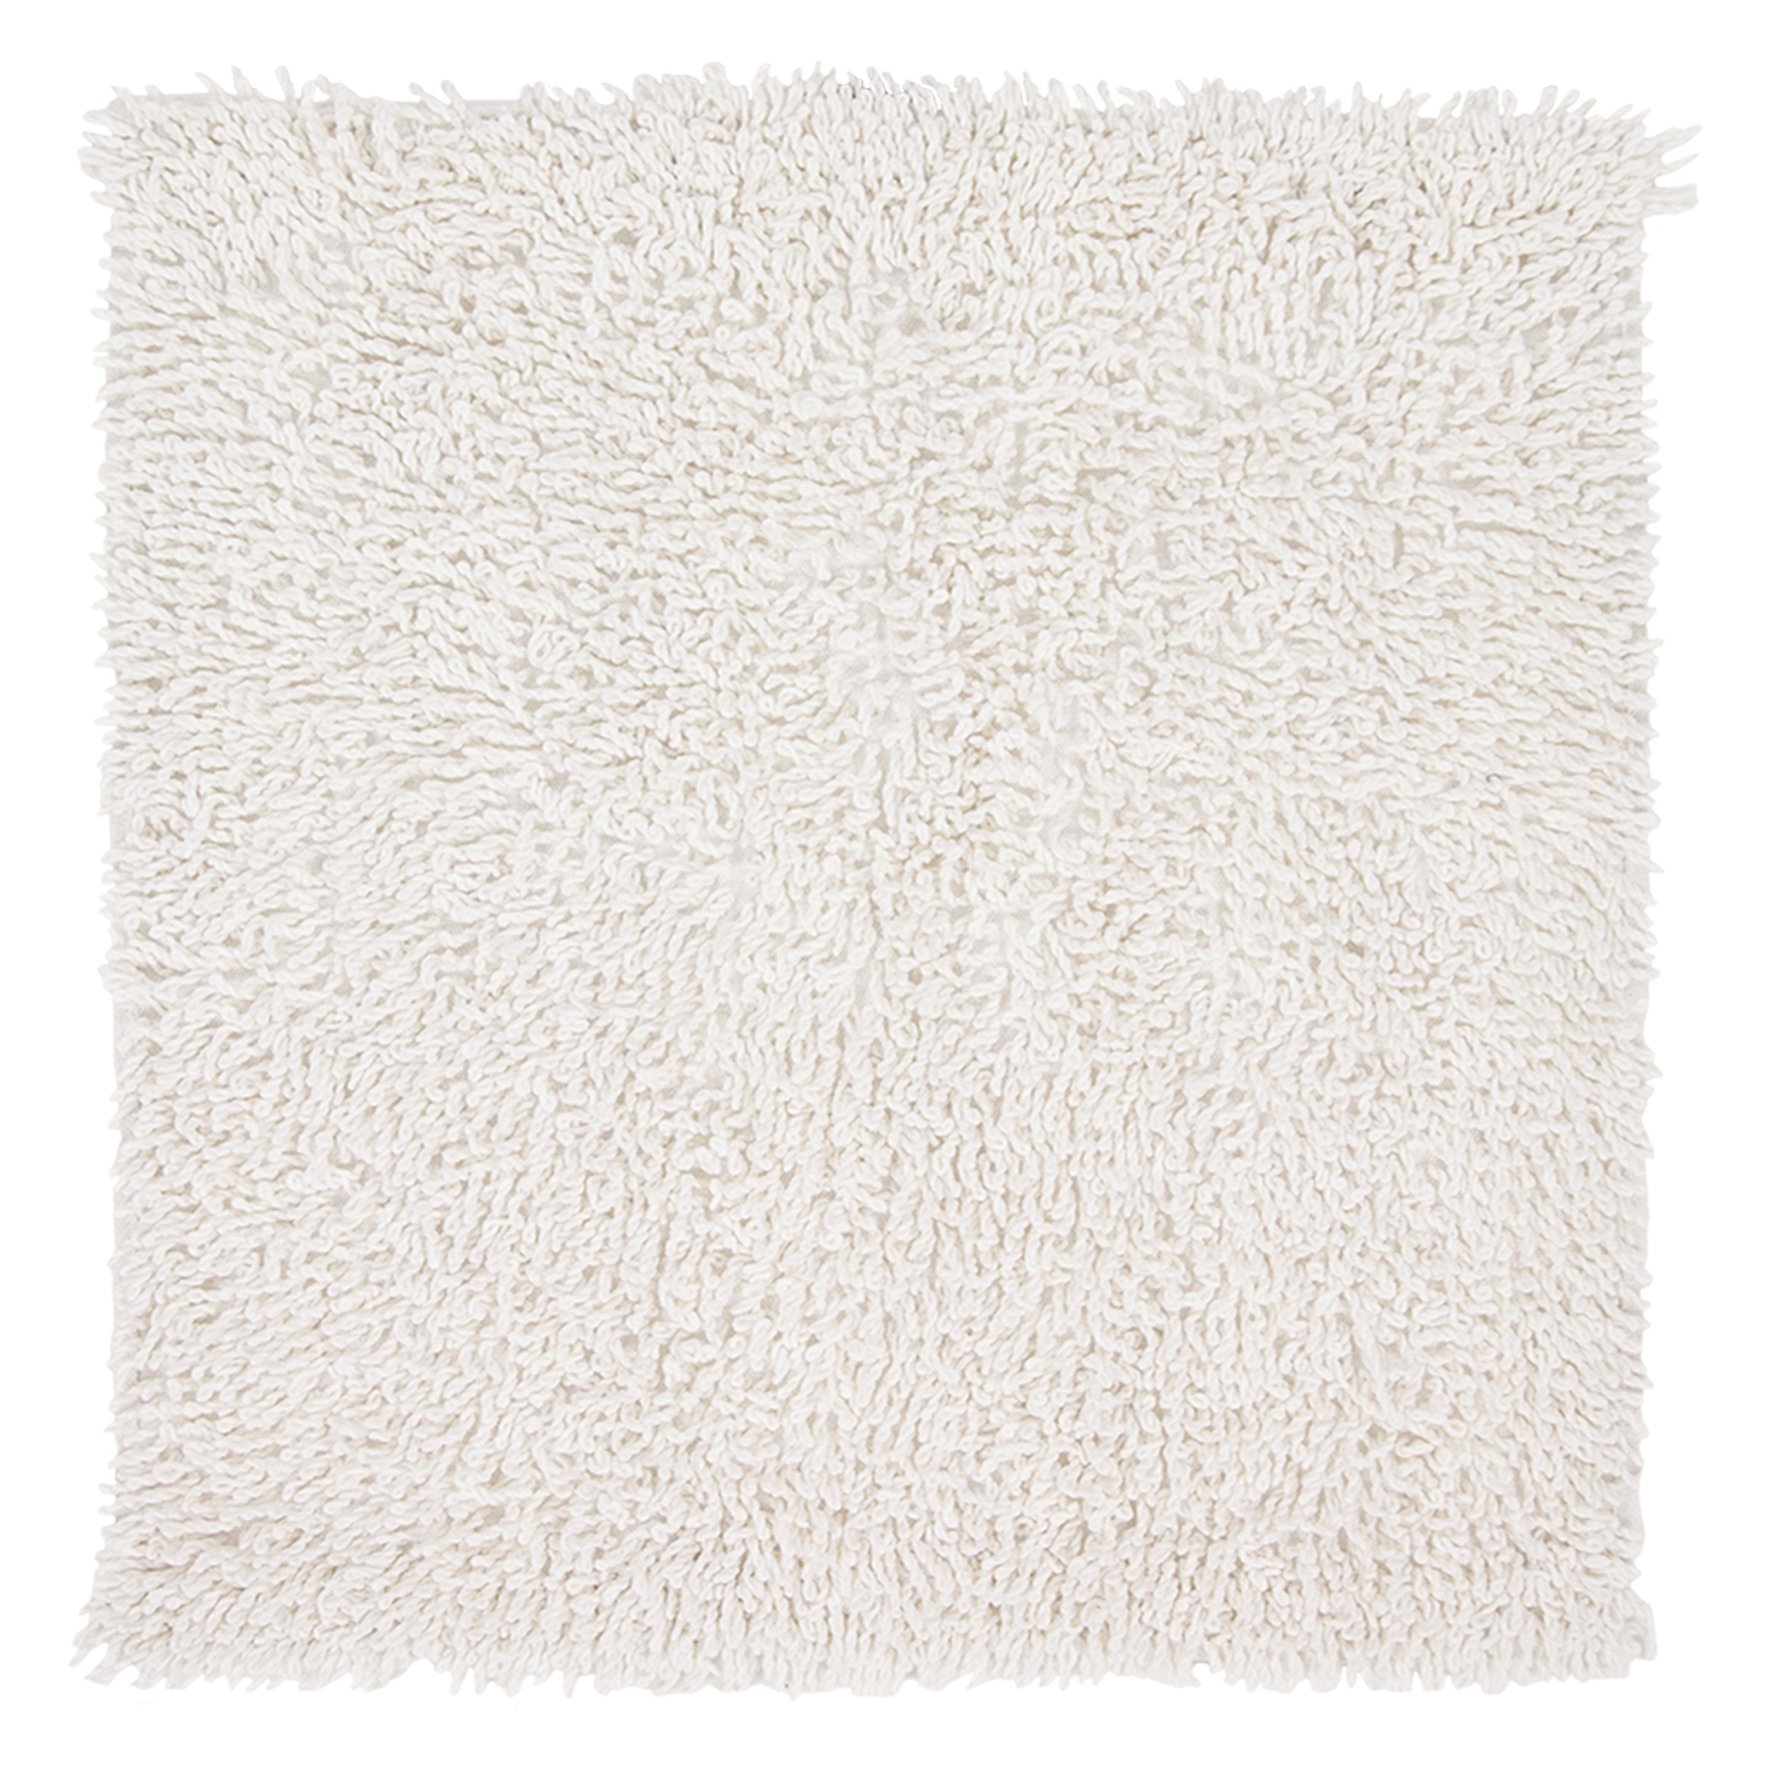 DIFFERNZ 31.102.16 Essence Bath Mat, White by Differnz